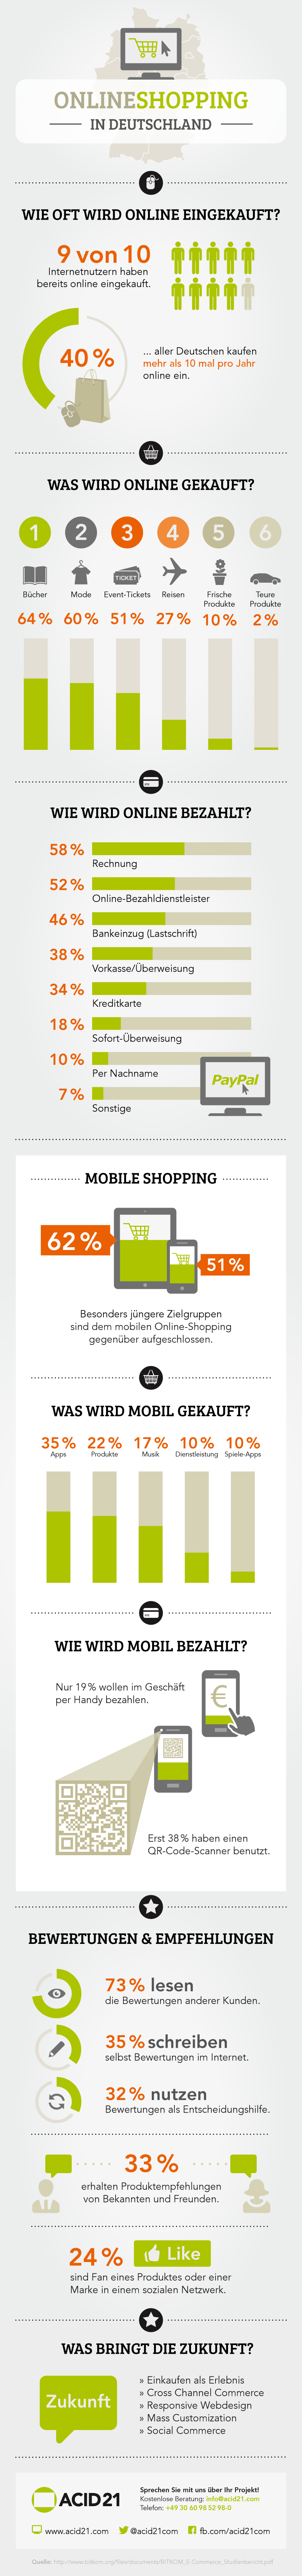 Infografik Onlineshopping in Deutschland